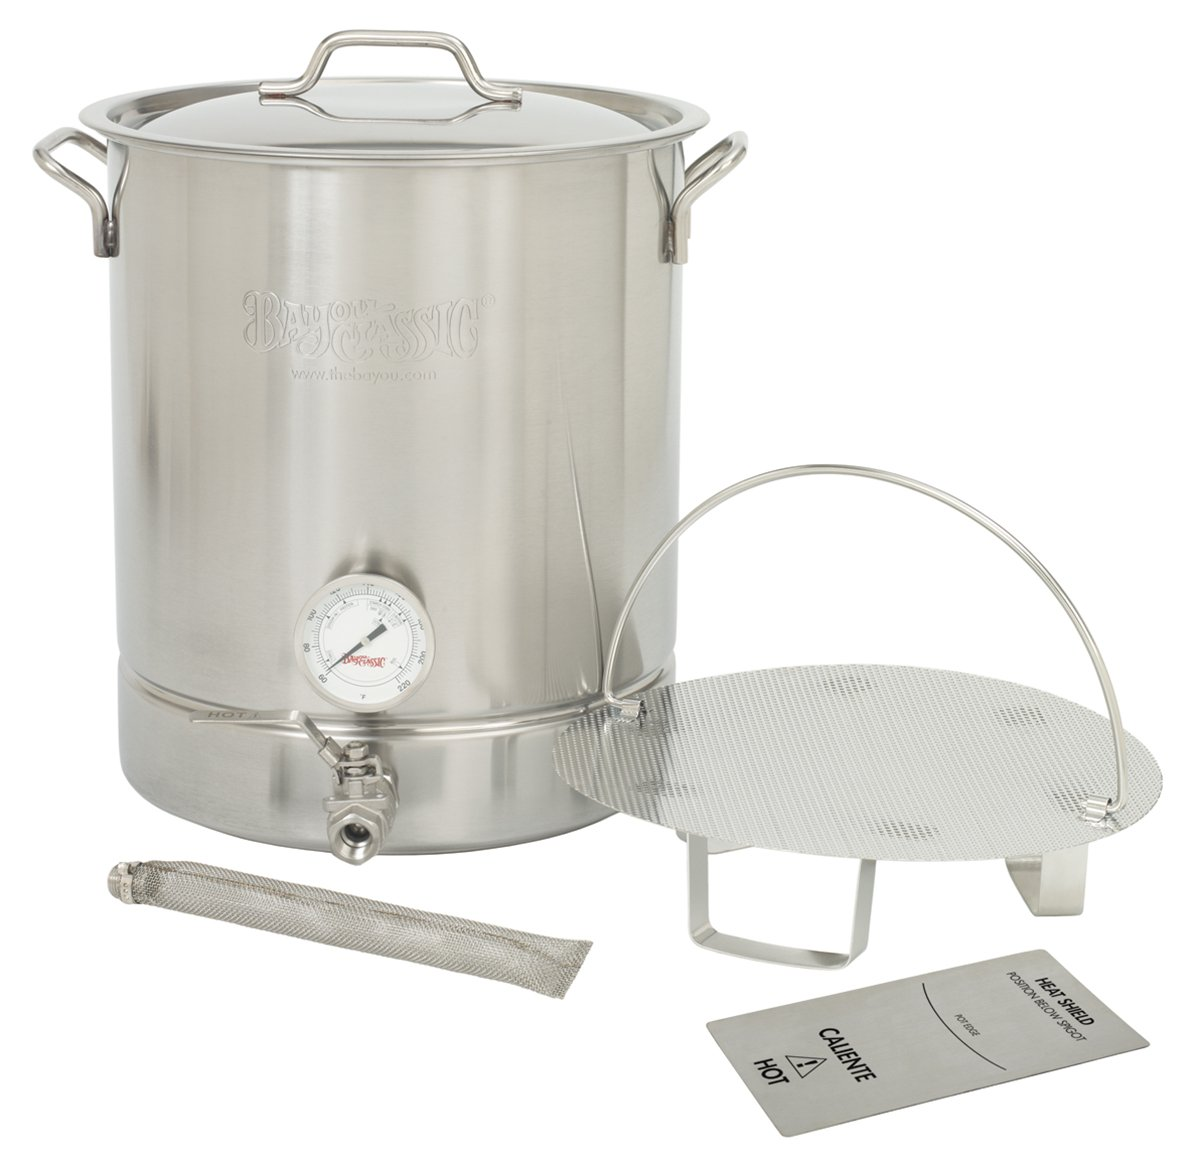 Bayou Classic 800 410 10 gal Stainless